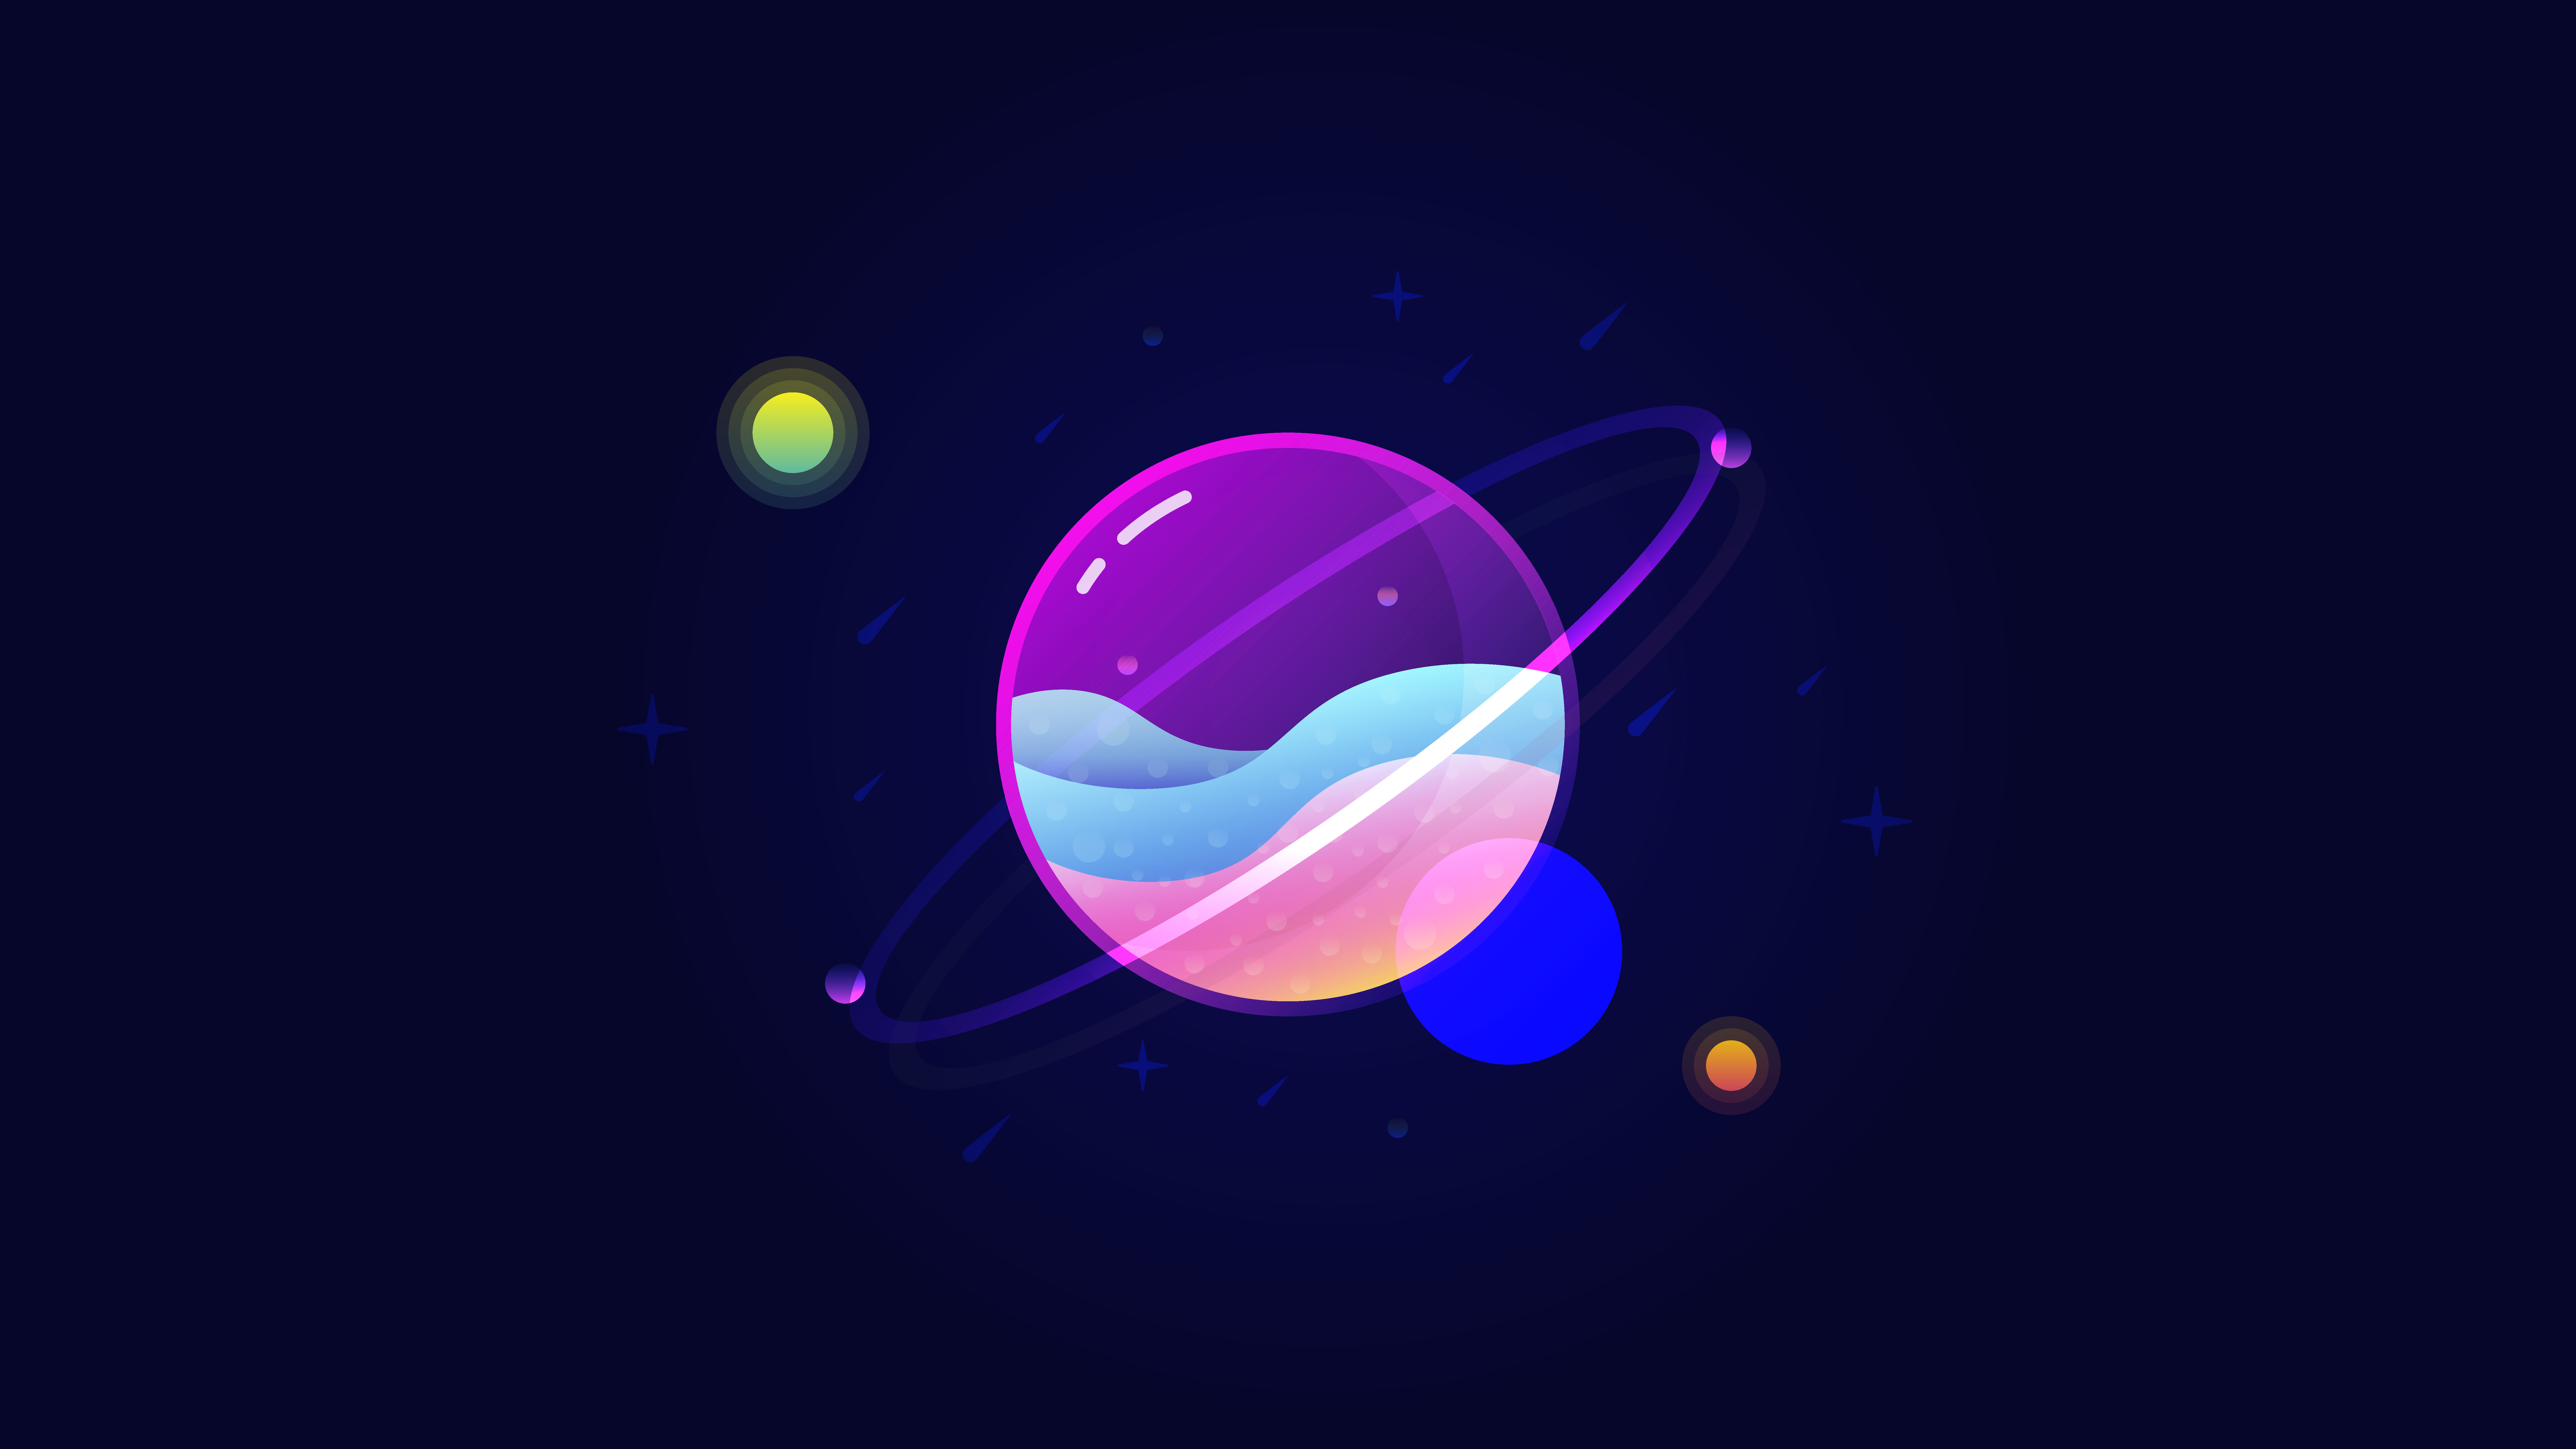 12x12 Planets Vector 12k 12k HD 12k Wallpapers, Images ...